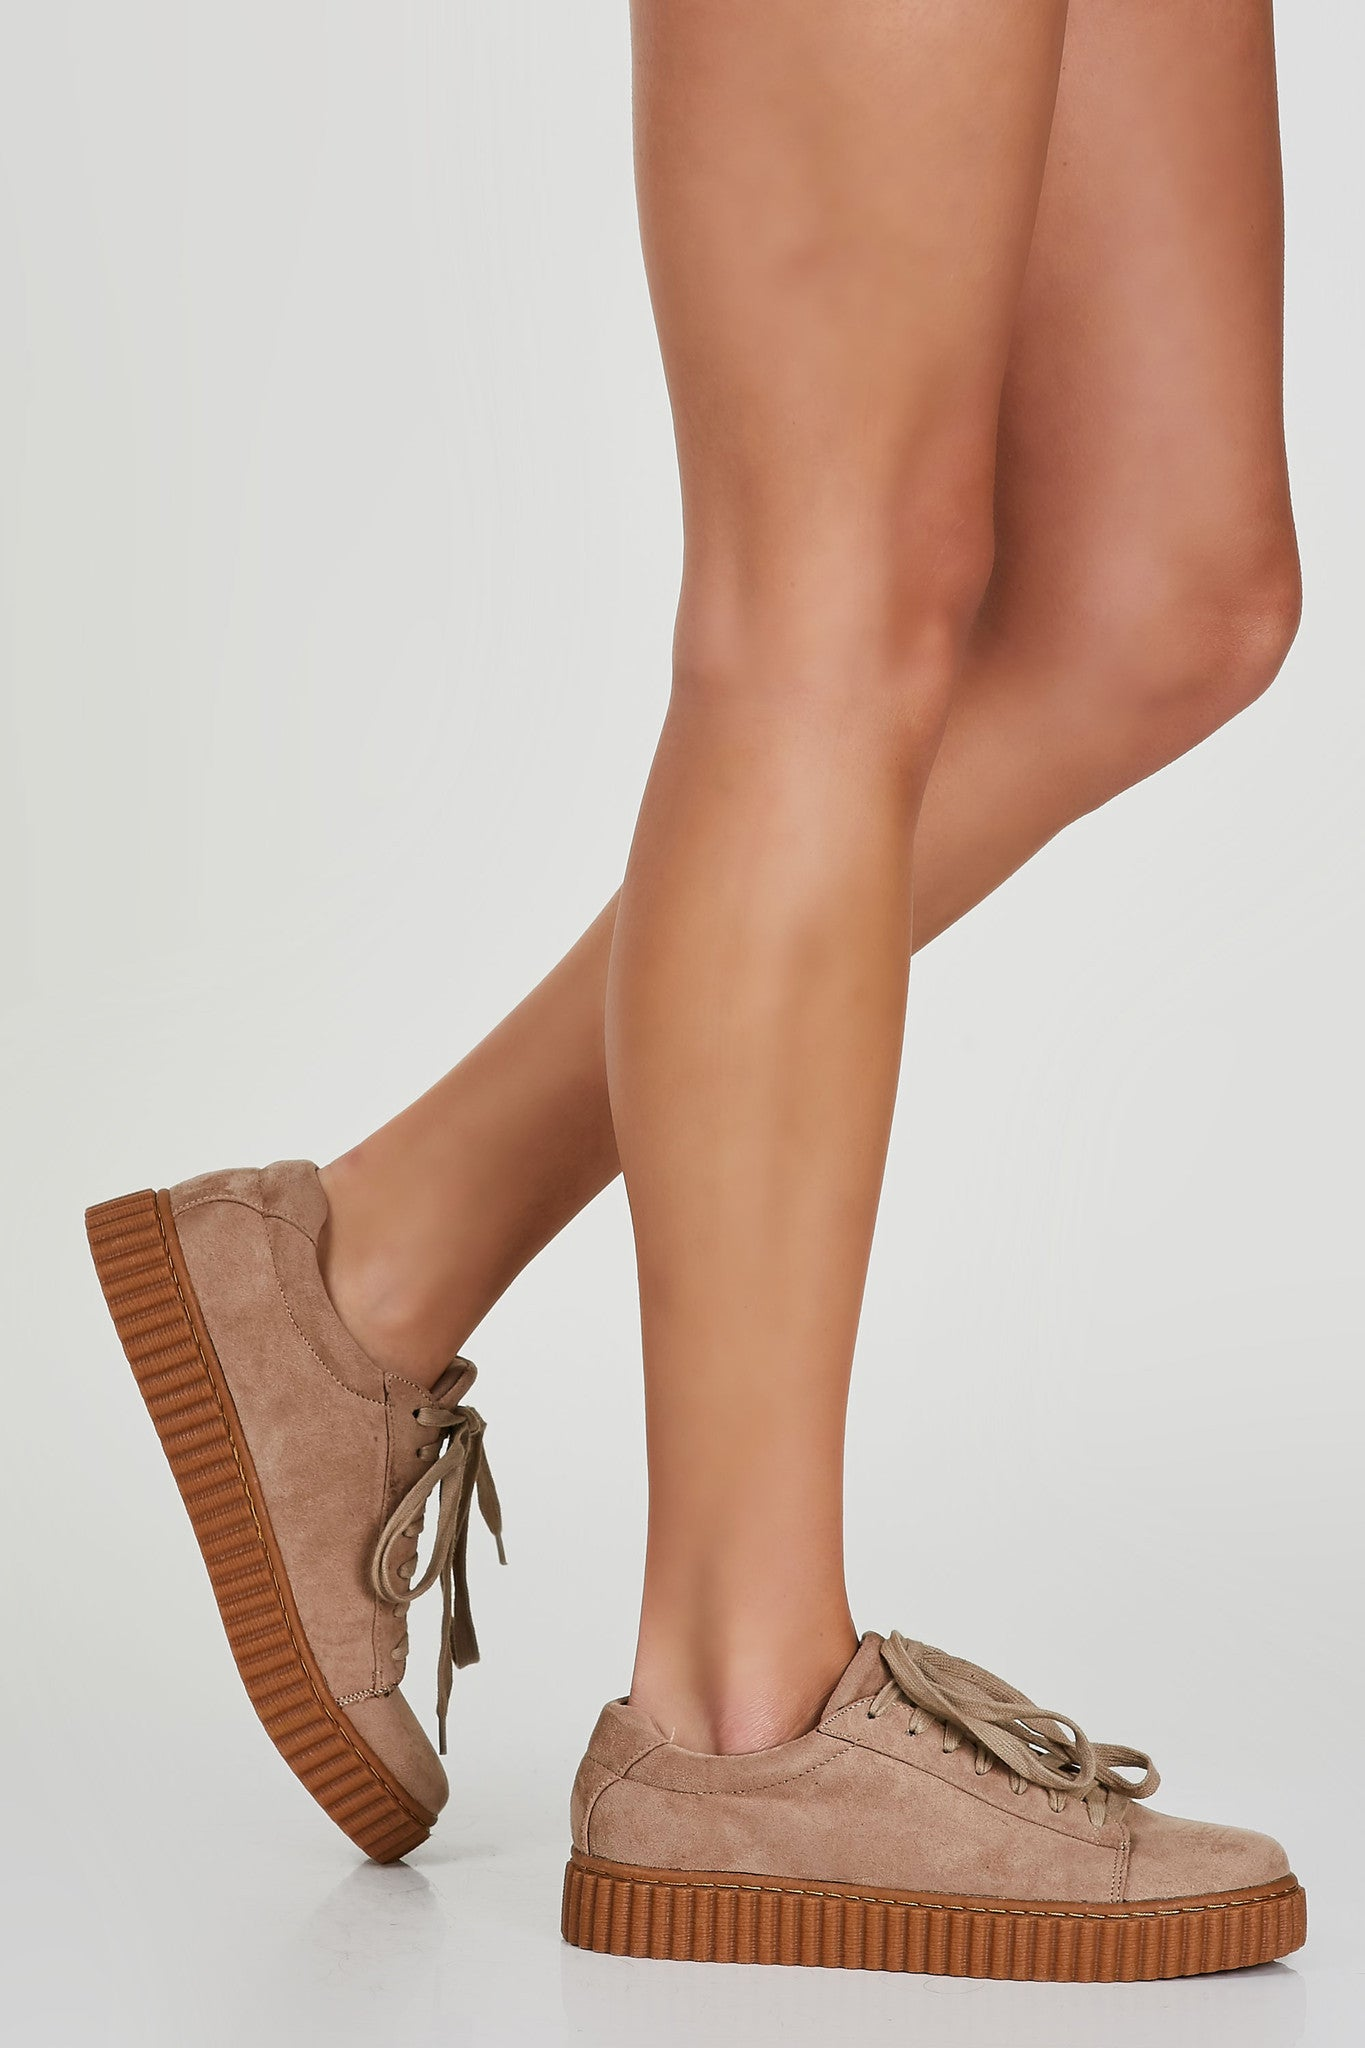 Classic creeper style sneakers with soft suede finish. Contrast platform soles with lace up finish for closure and fit.